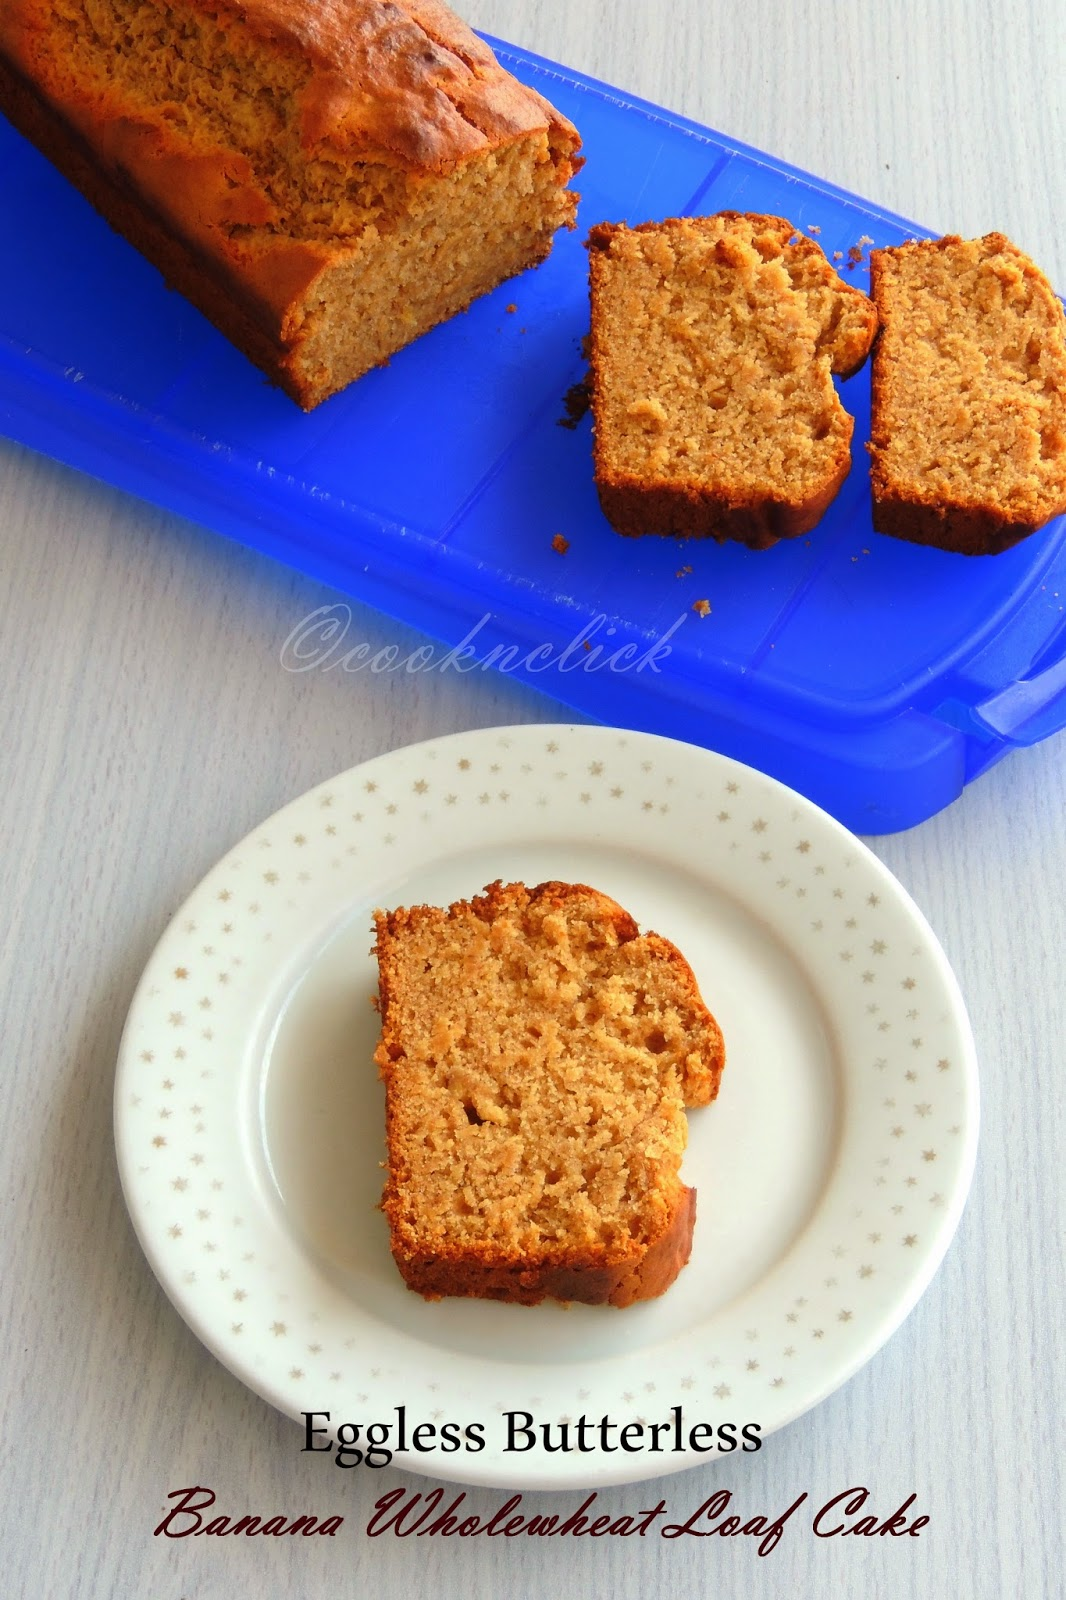 Eggless Butterless Banana Wholewheat loaf cake, Loaf Cake, Healthy Banana Loaf Cake